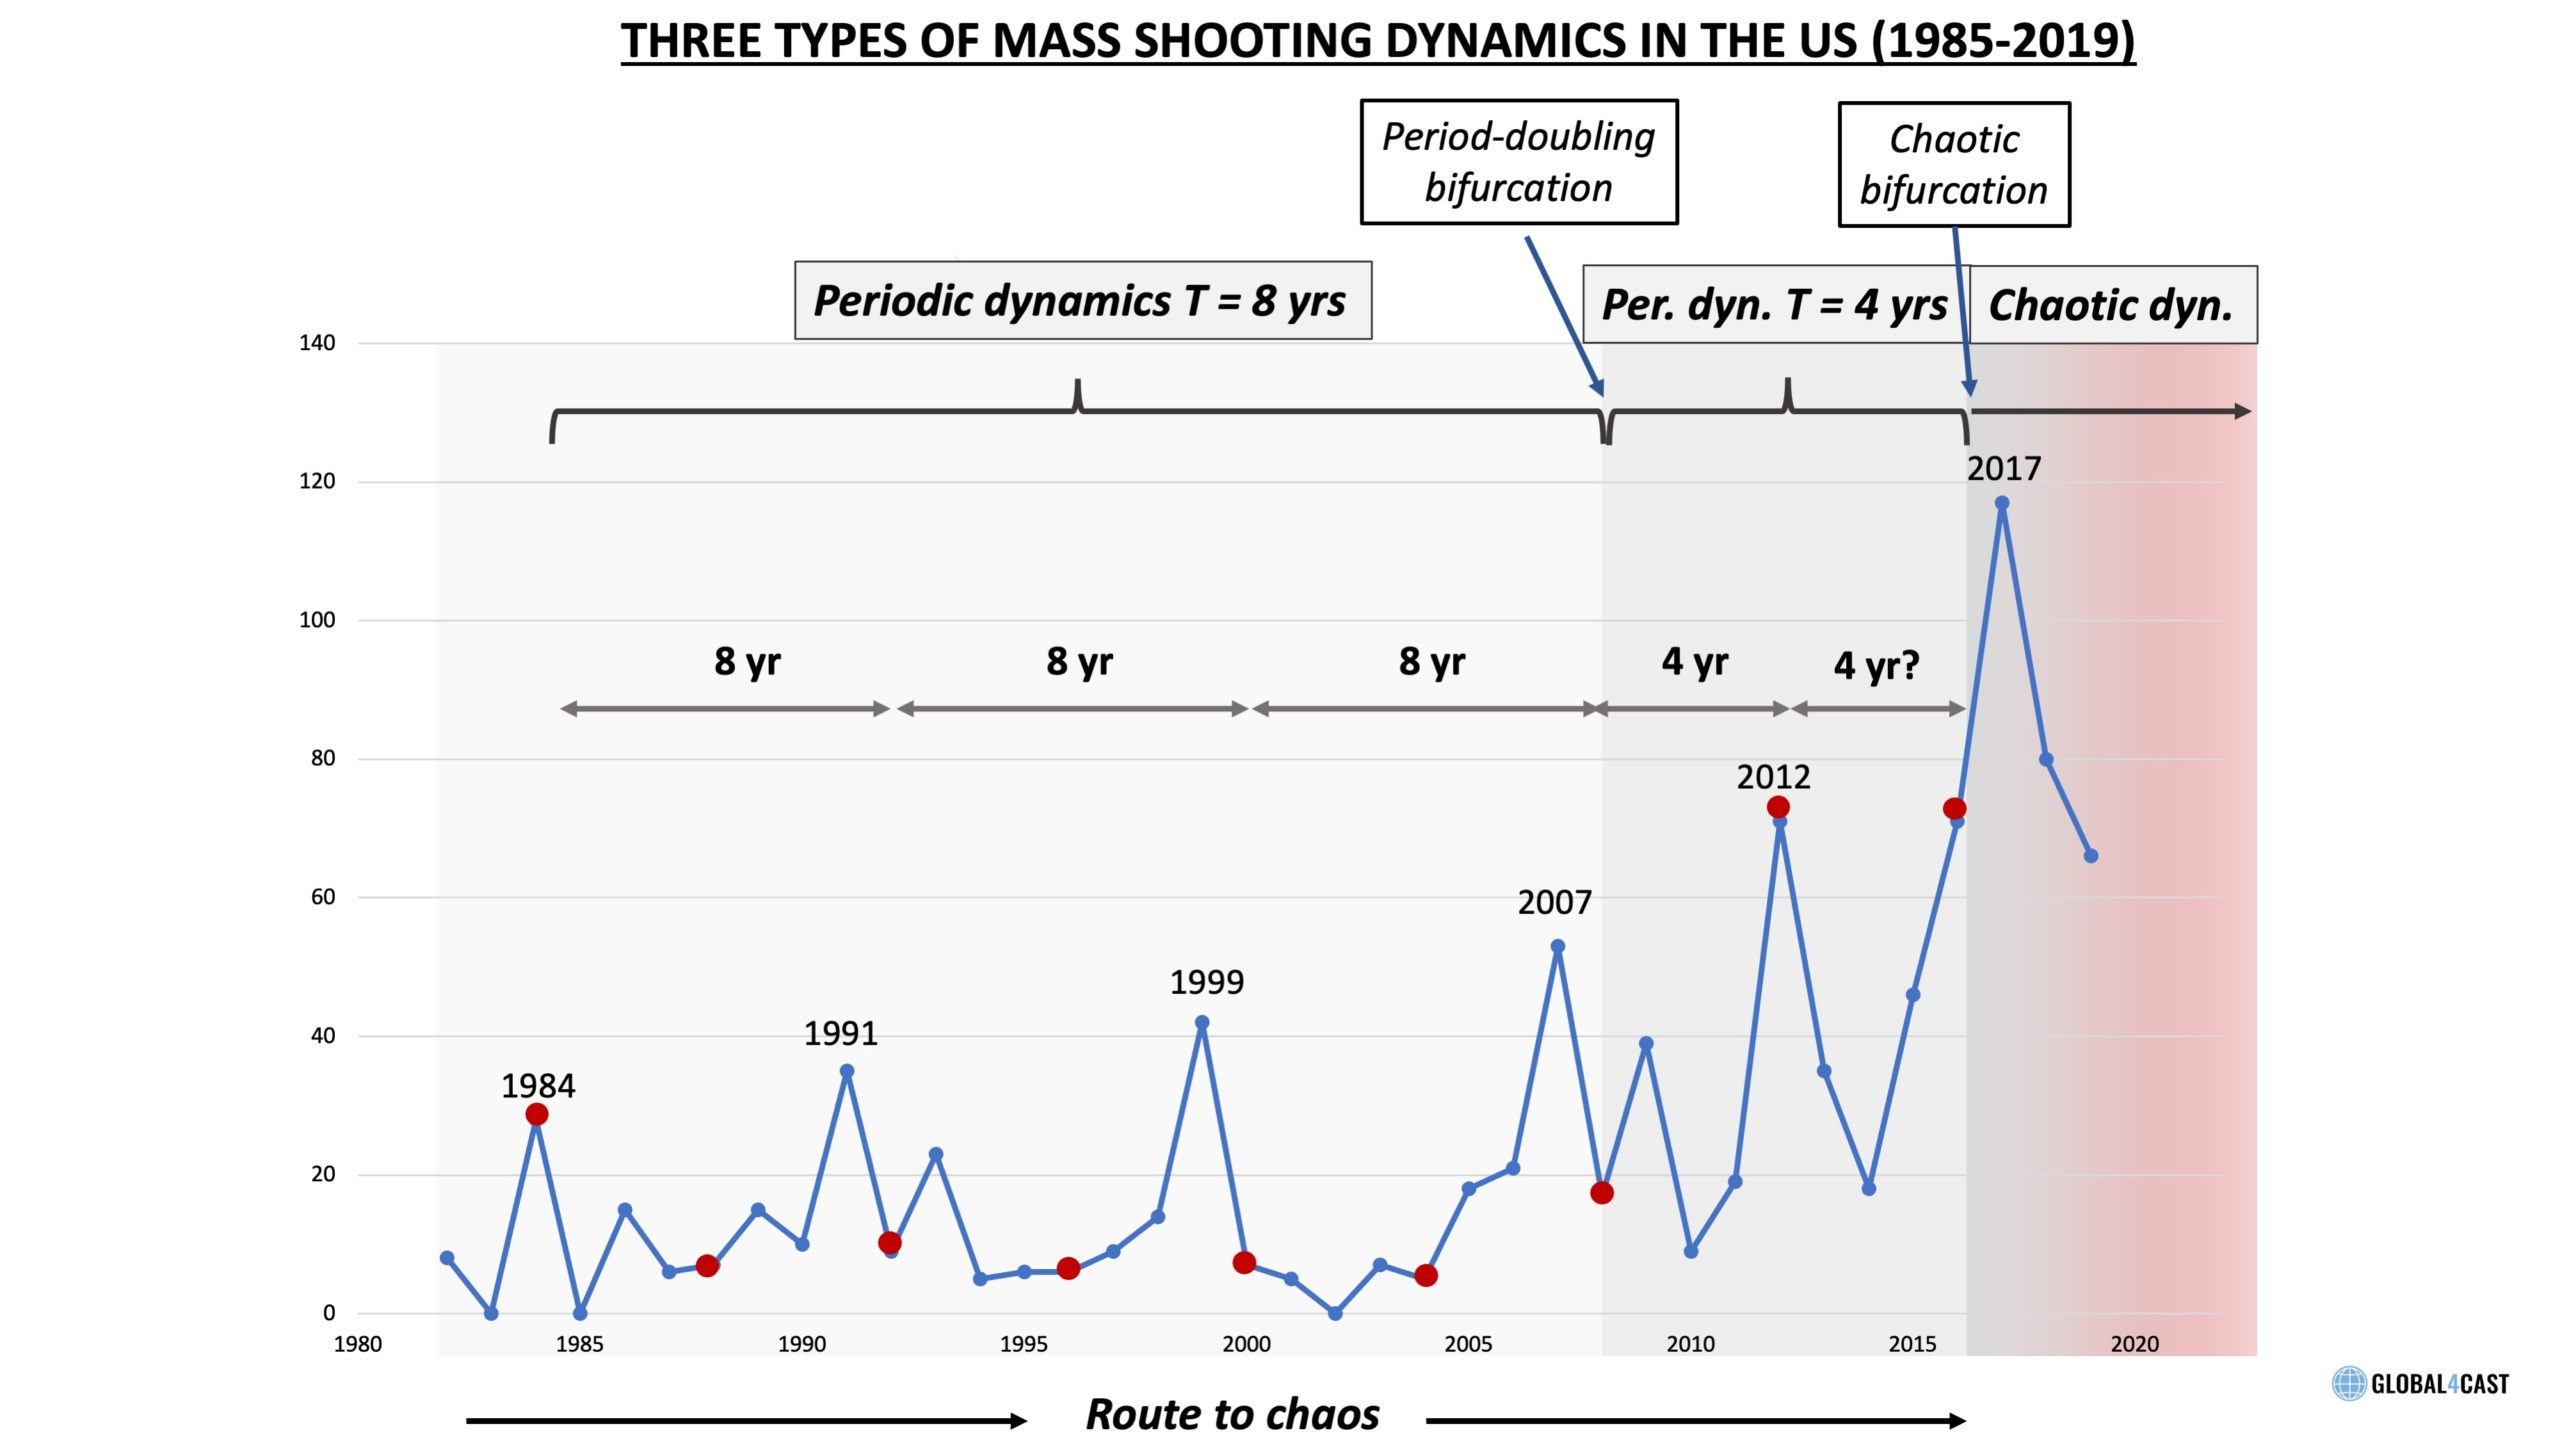 Mass Shooting Cycles in American Society (1982-2019) and the Route to Chaos